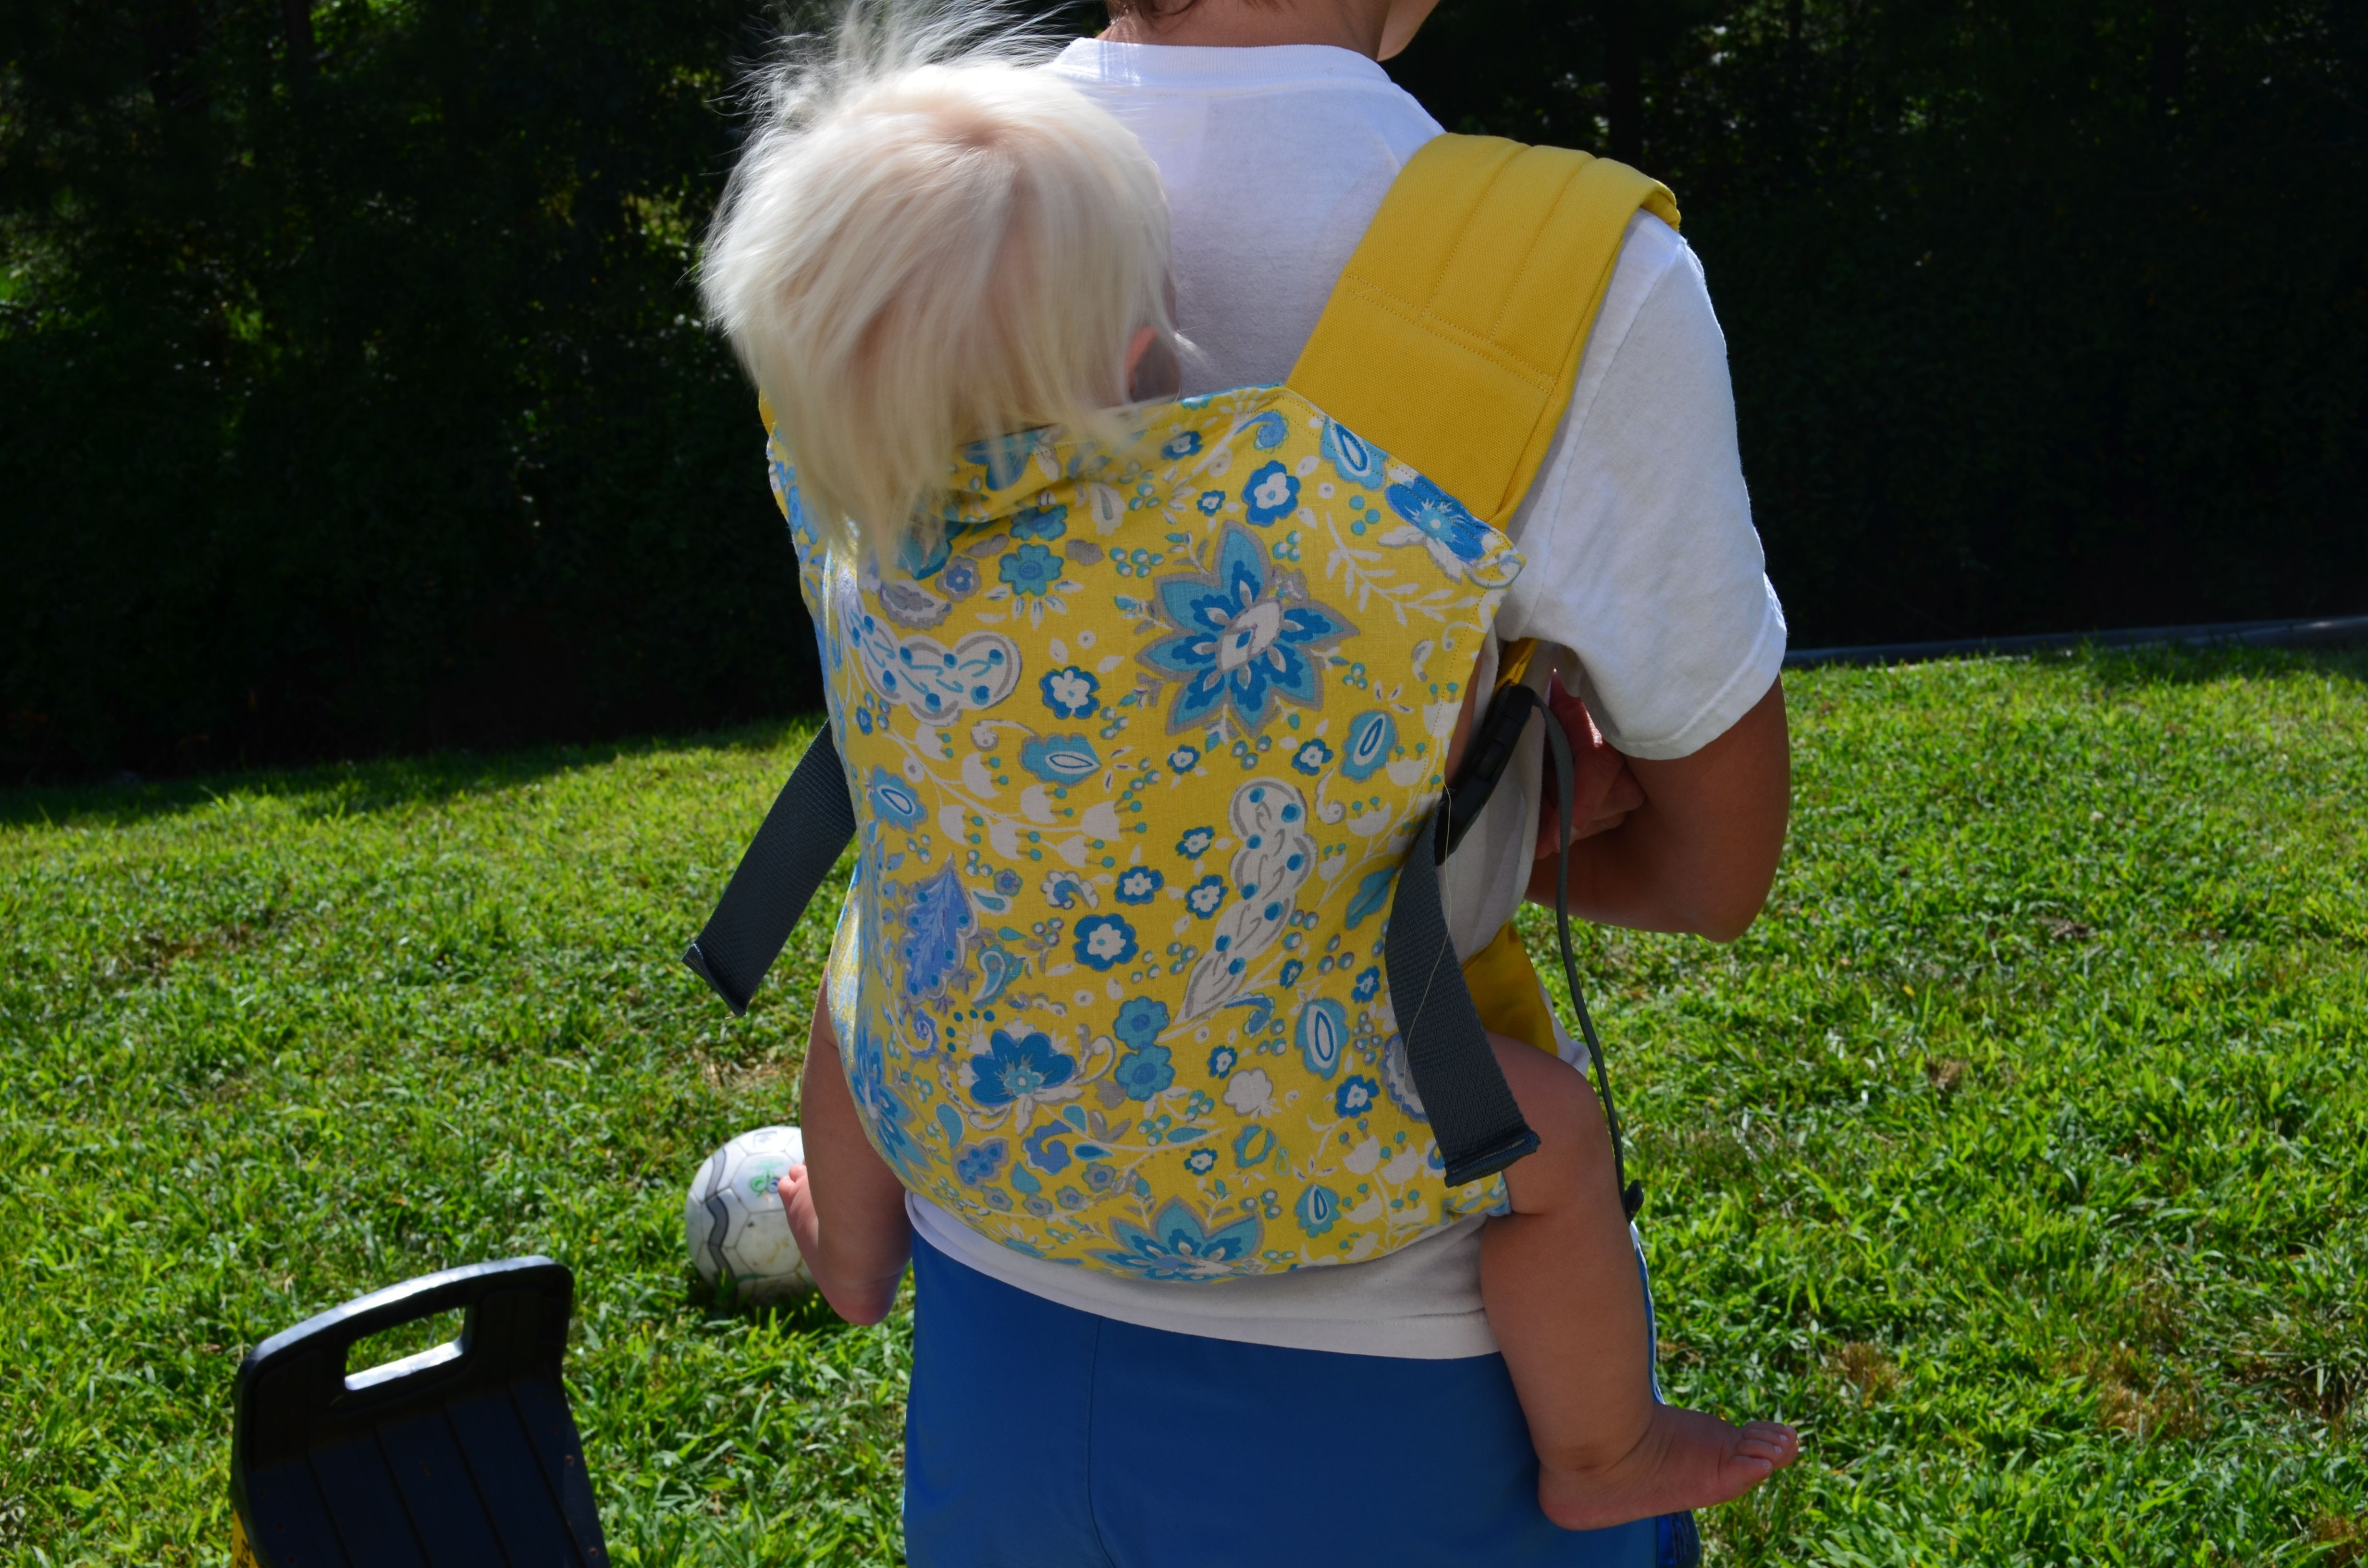 Best ideas about DIY Baby Carriers . Save or Pin DIY soft structured carrier Baby Wearing Now.